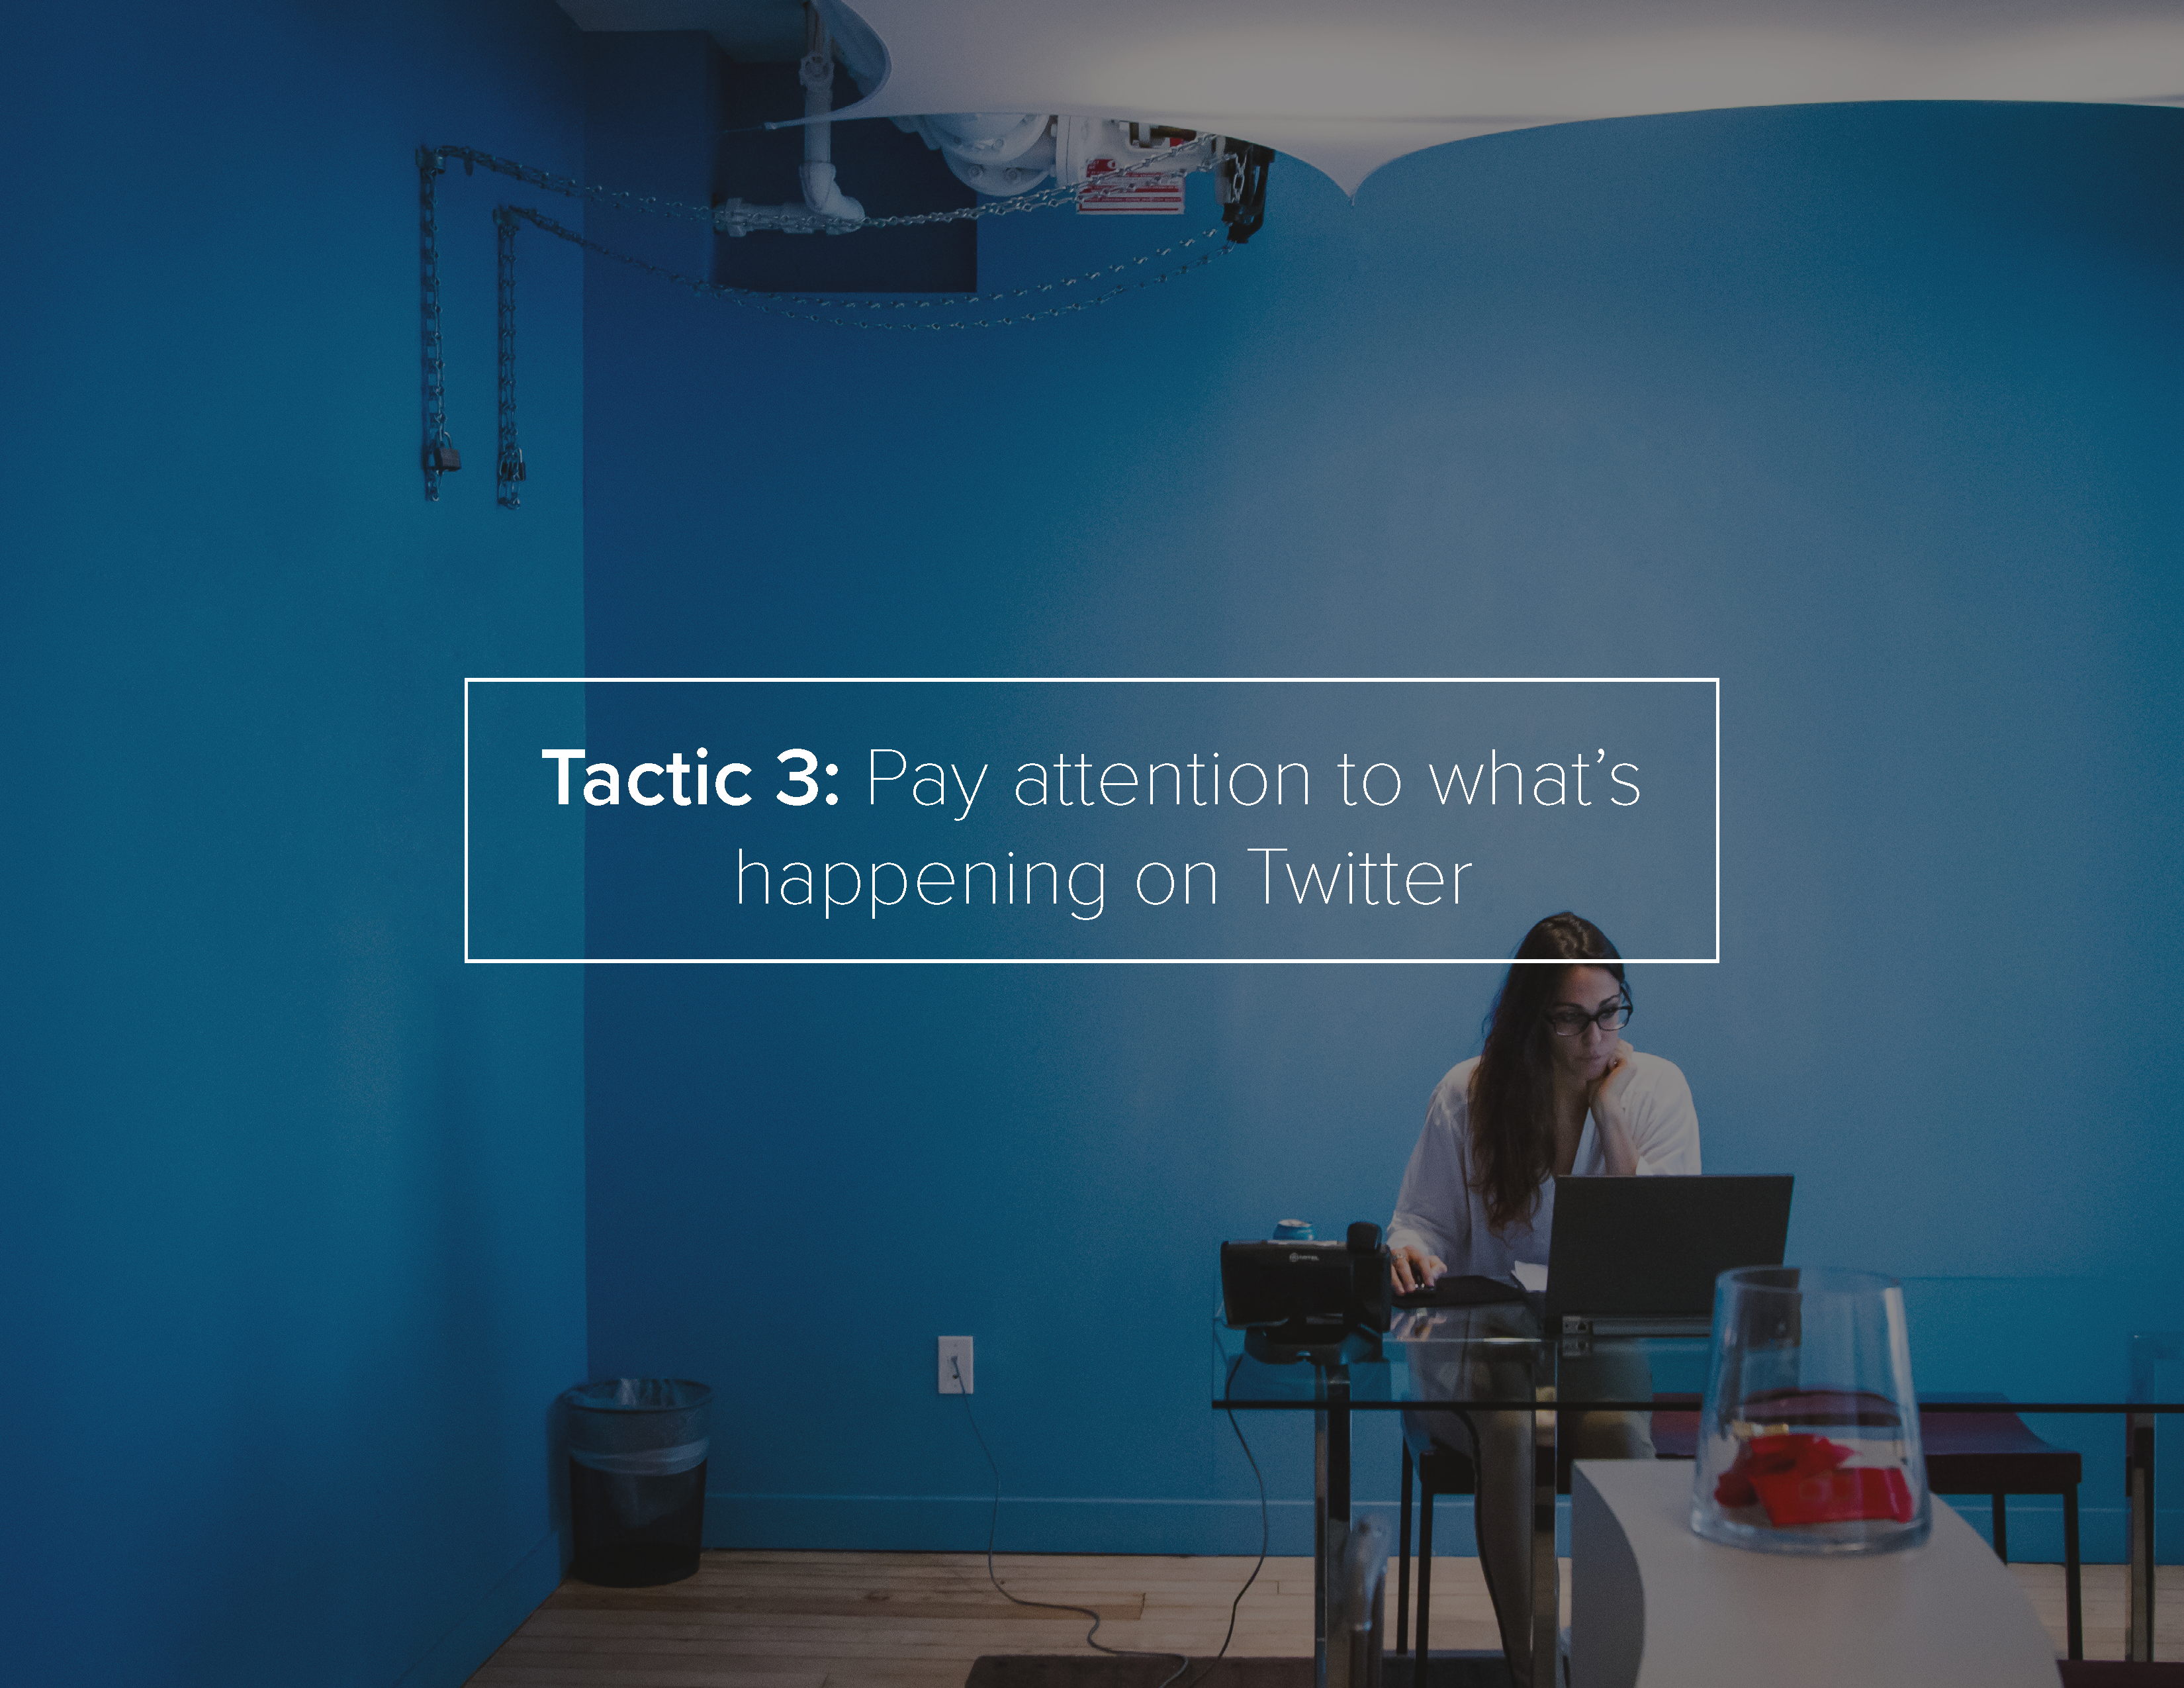 Tactic 3 Preview